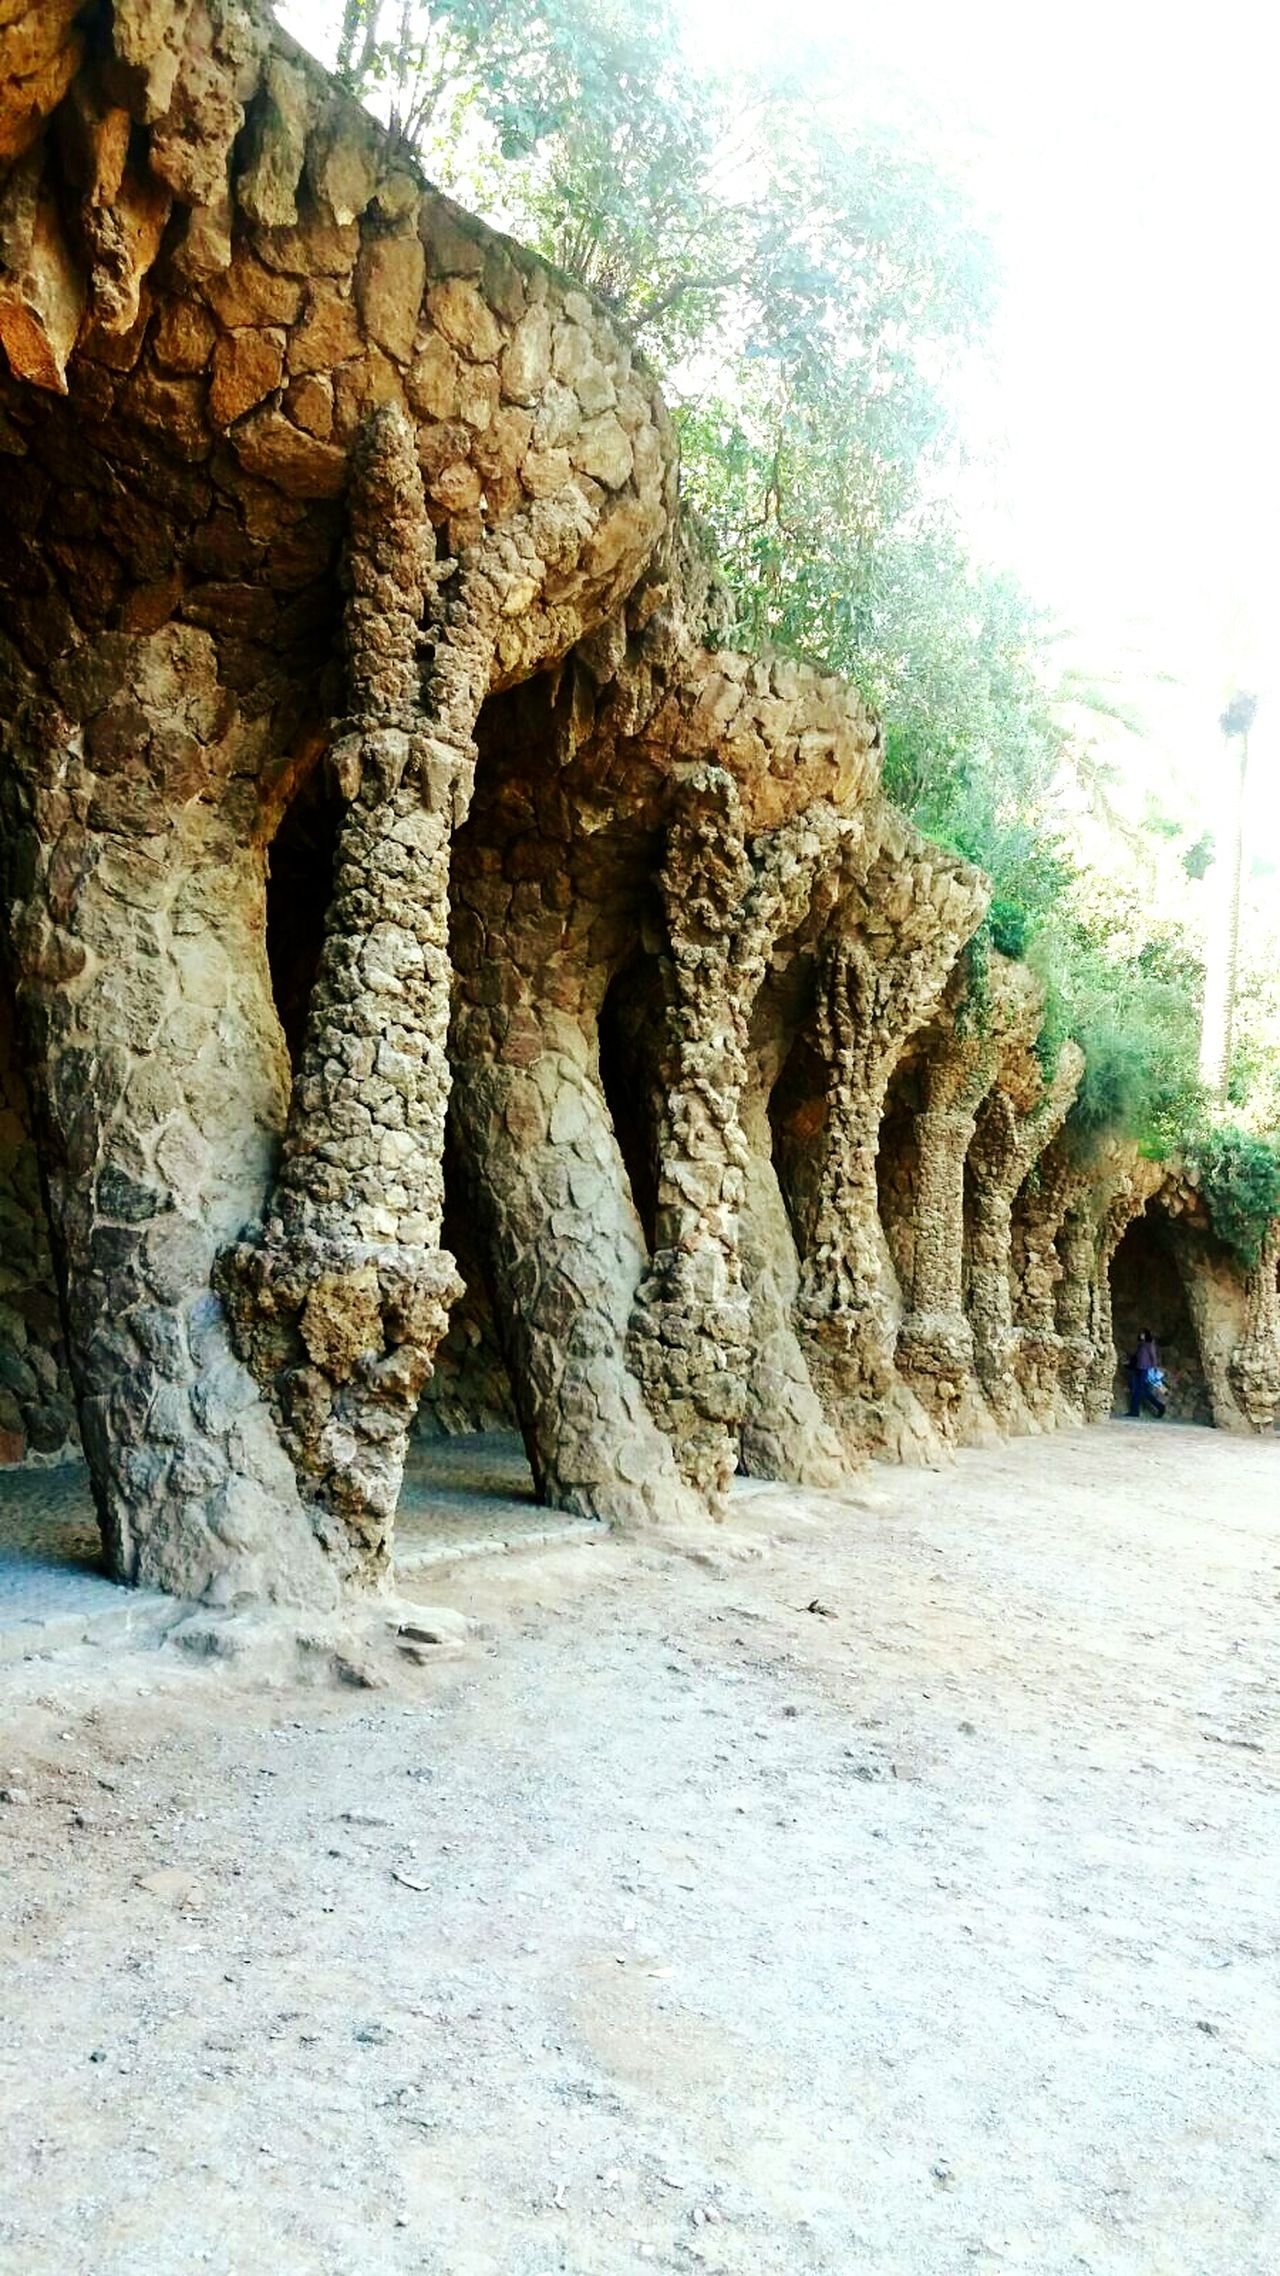 Tree Growth No People Nature Day Textured  Outdoors Beauty In Nature Ancient Civilization Gaudì Architecture Work Gaudi Barcelona Tunel Tunnel Nature Architecture Arch